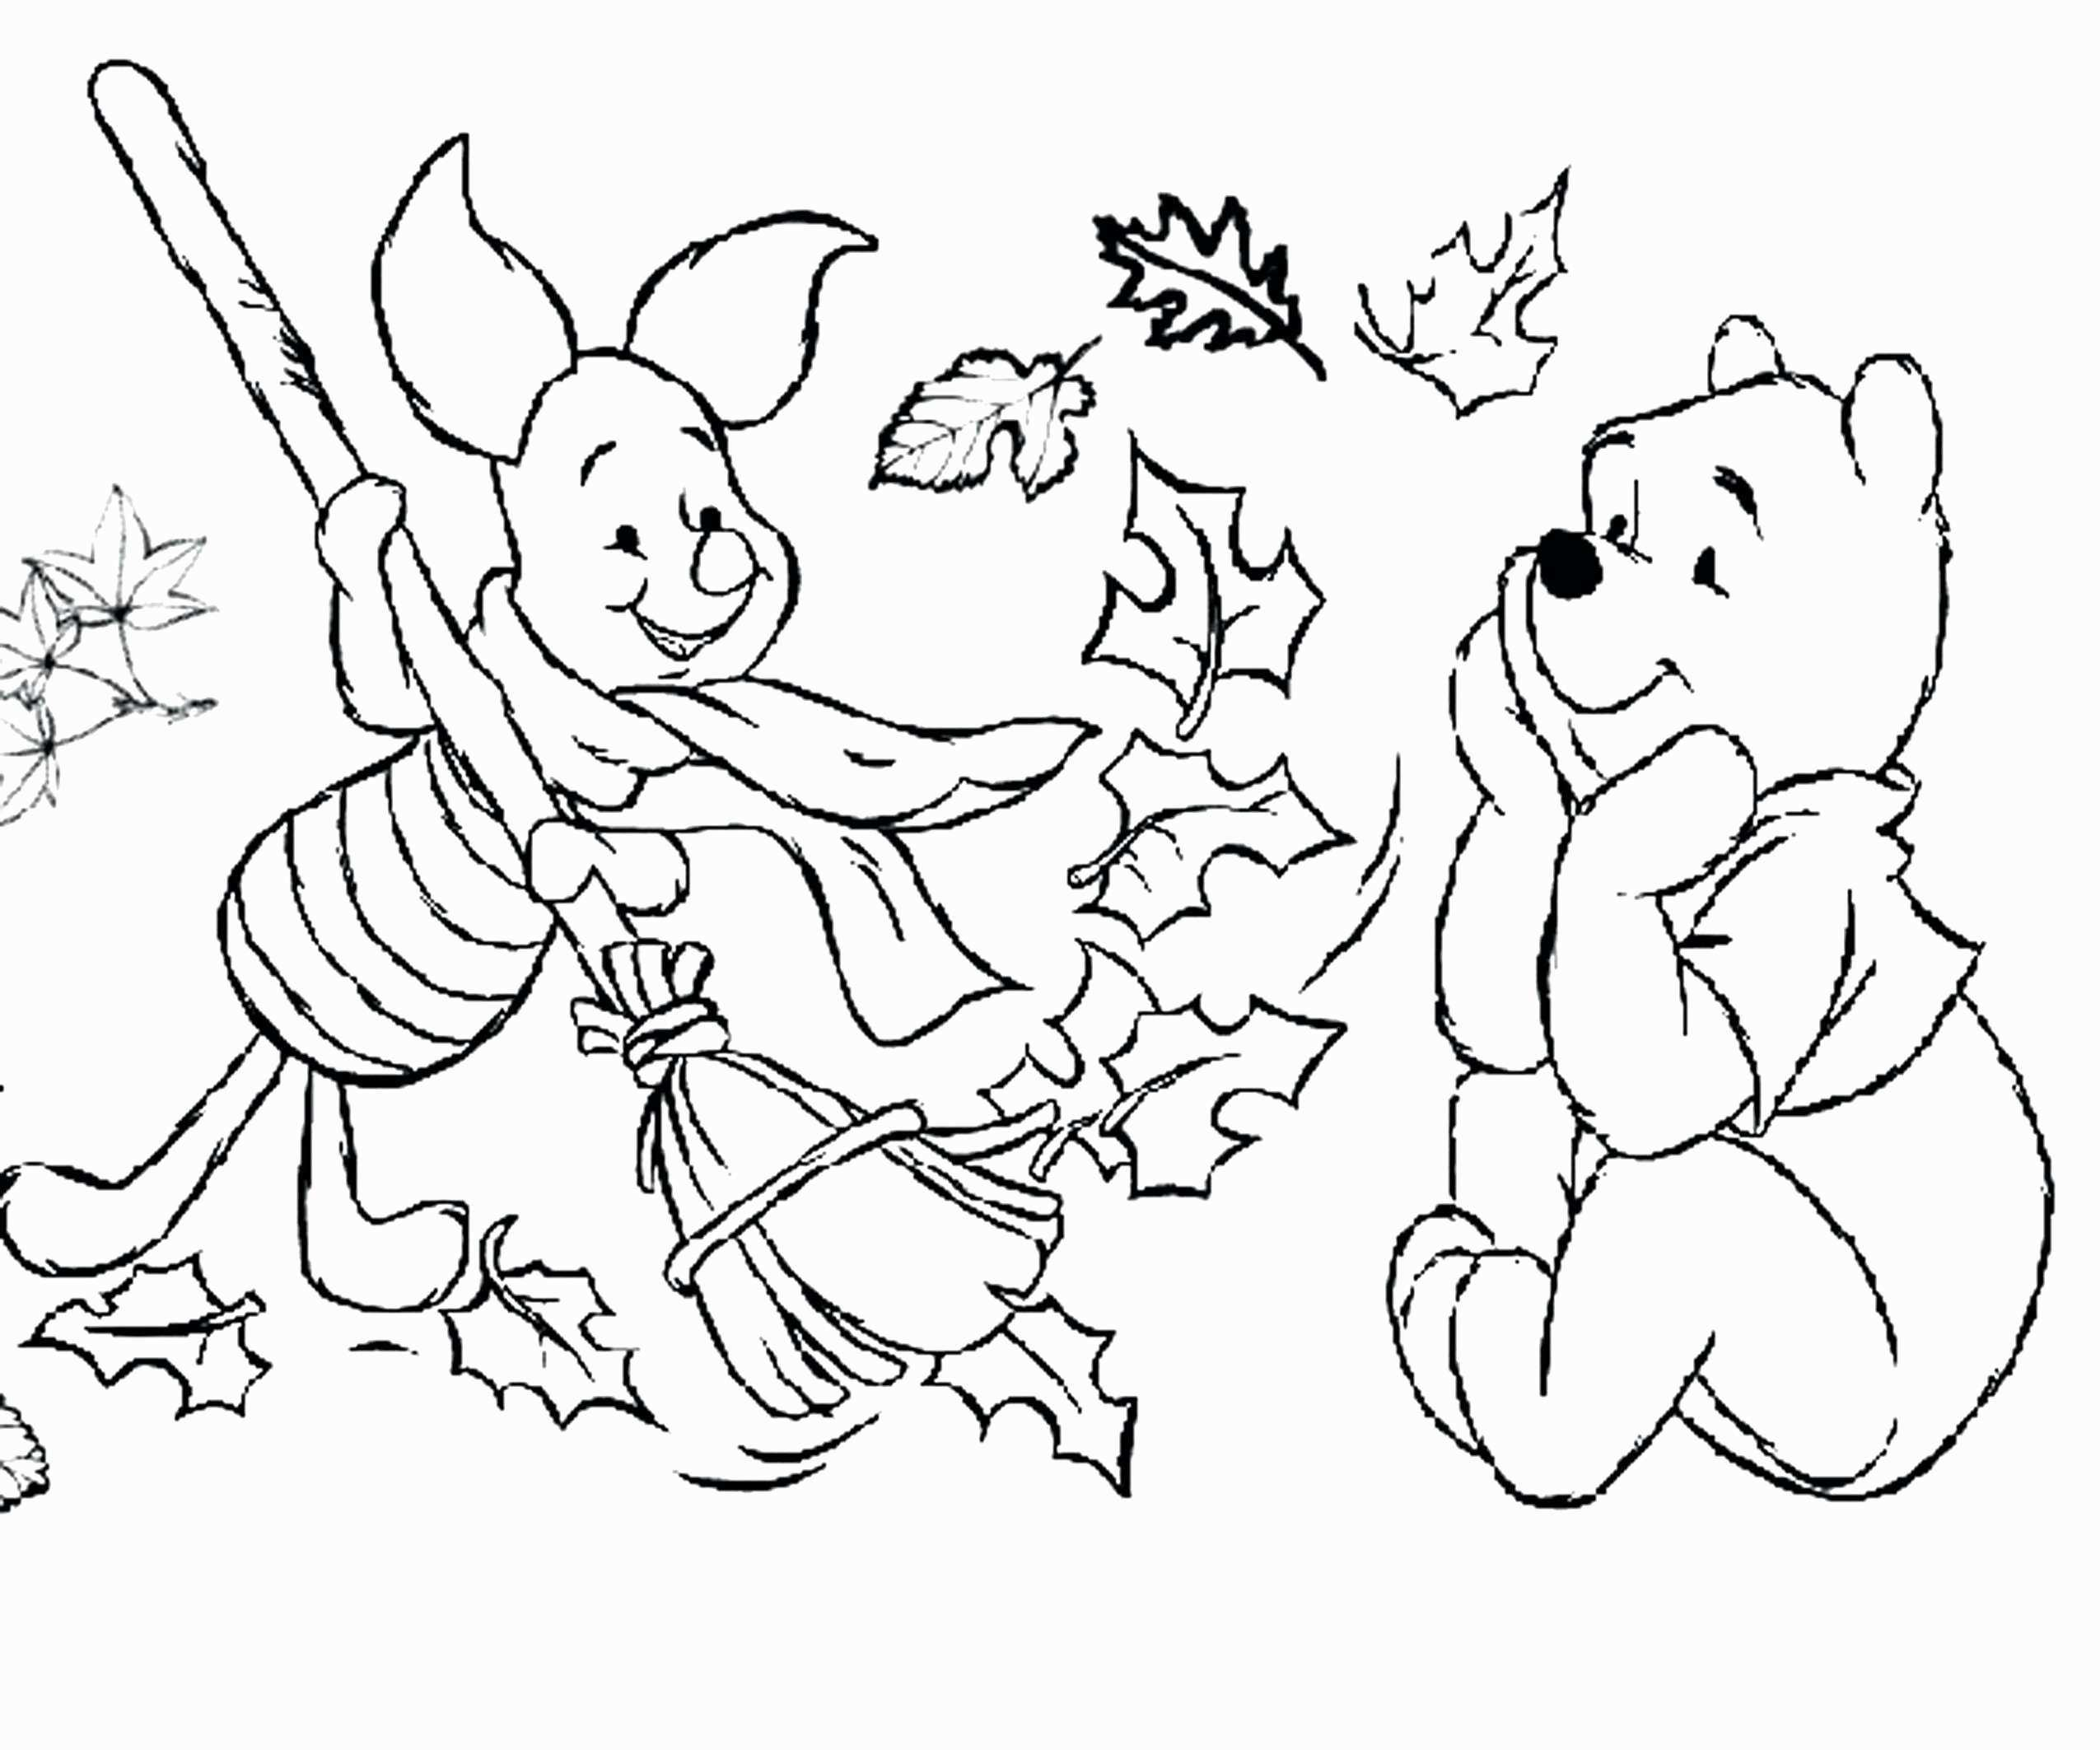 Detailed Christmas ornament Coloring Pages